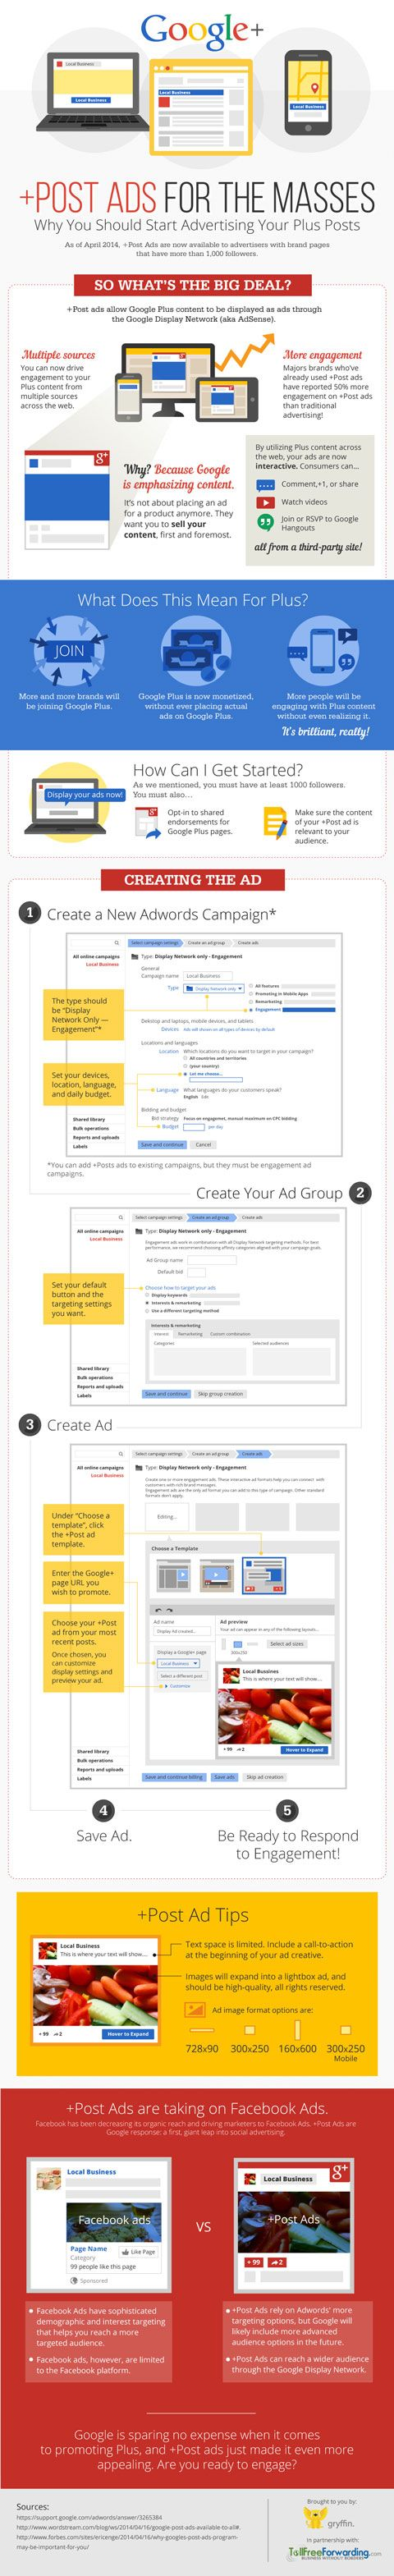 #Google+ - How to advertise your post +Post #Ads For All